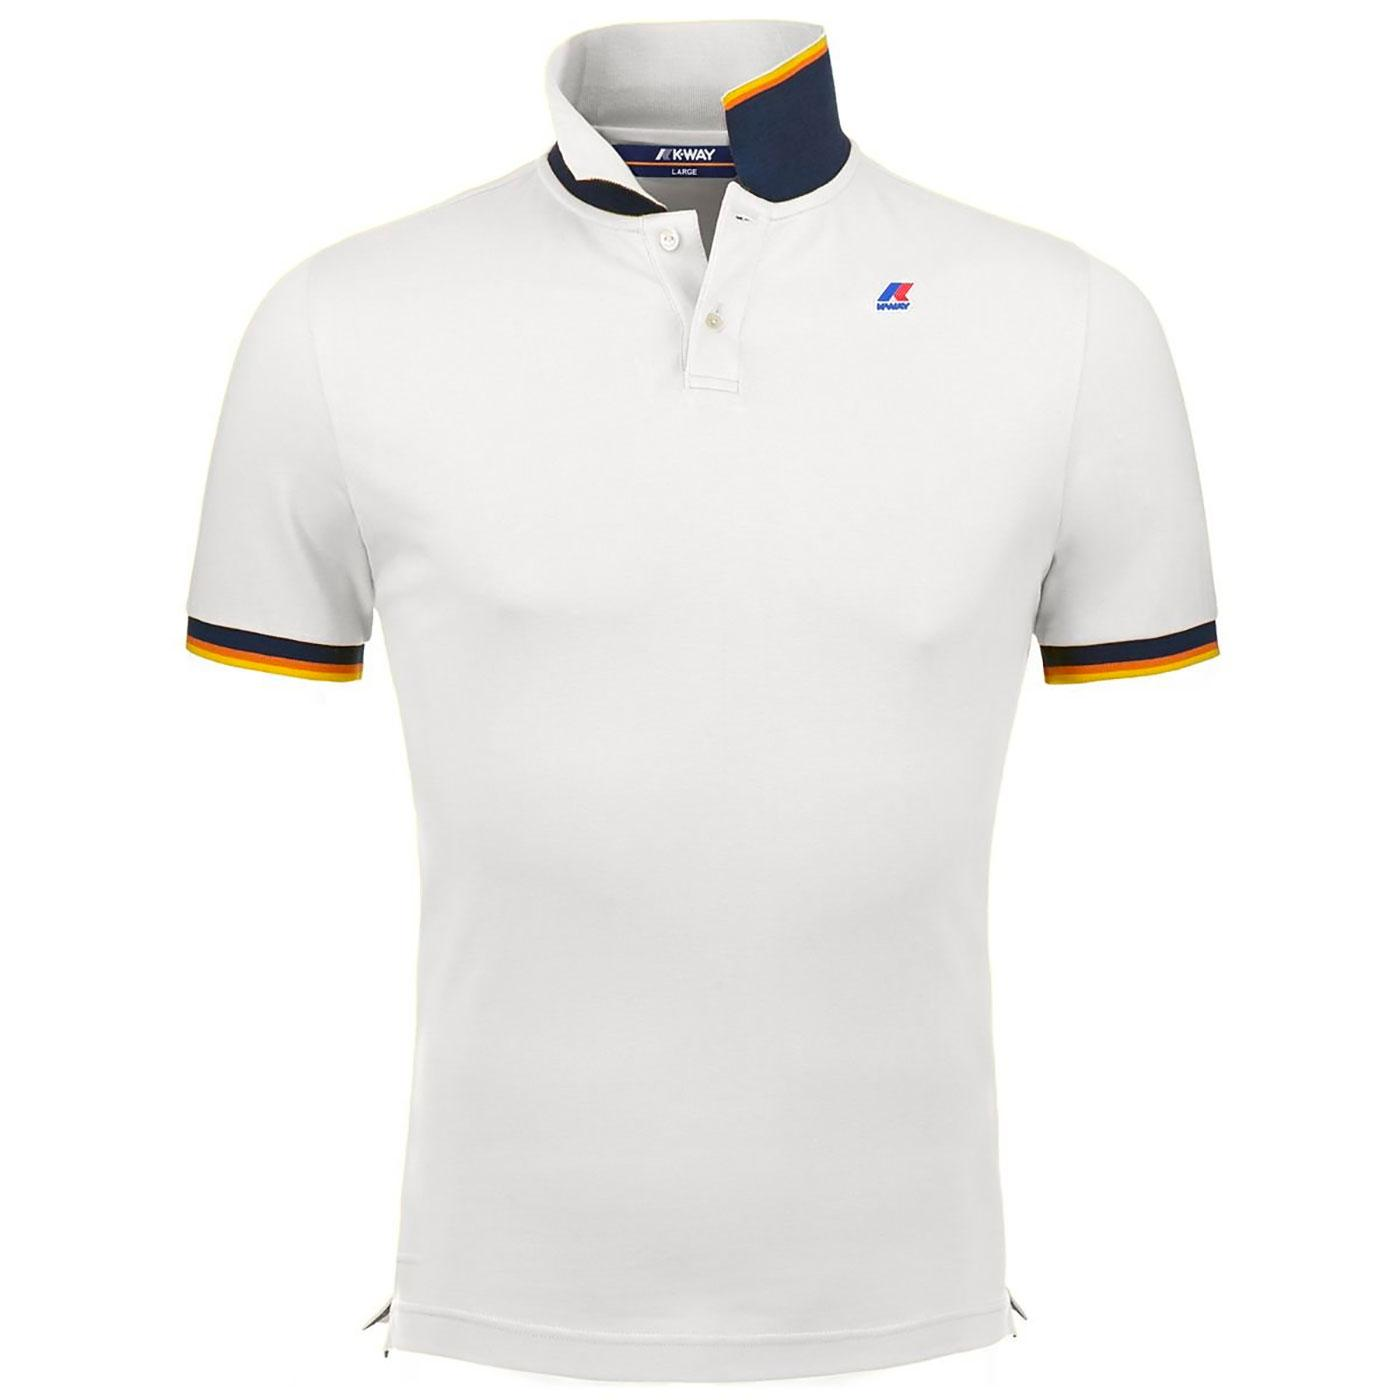 Vincent K-WAY Retro Mod Pique Polo Shirt (White)